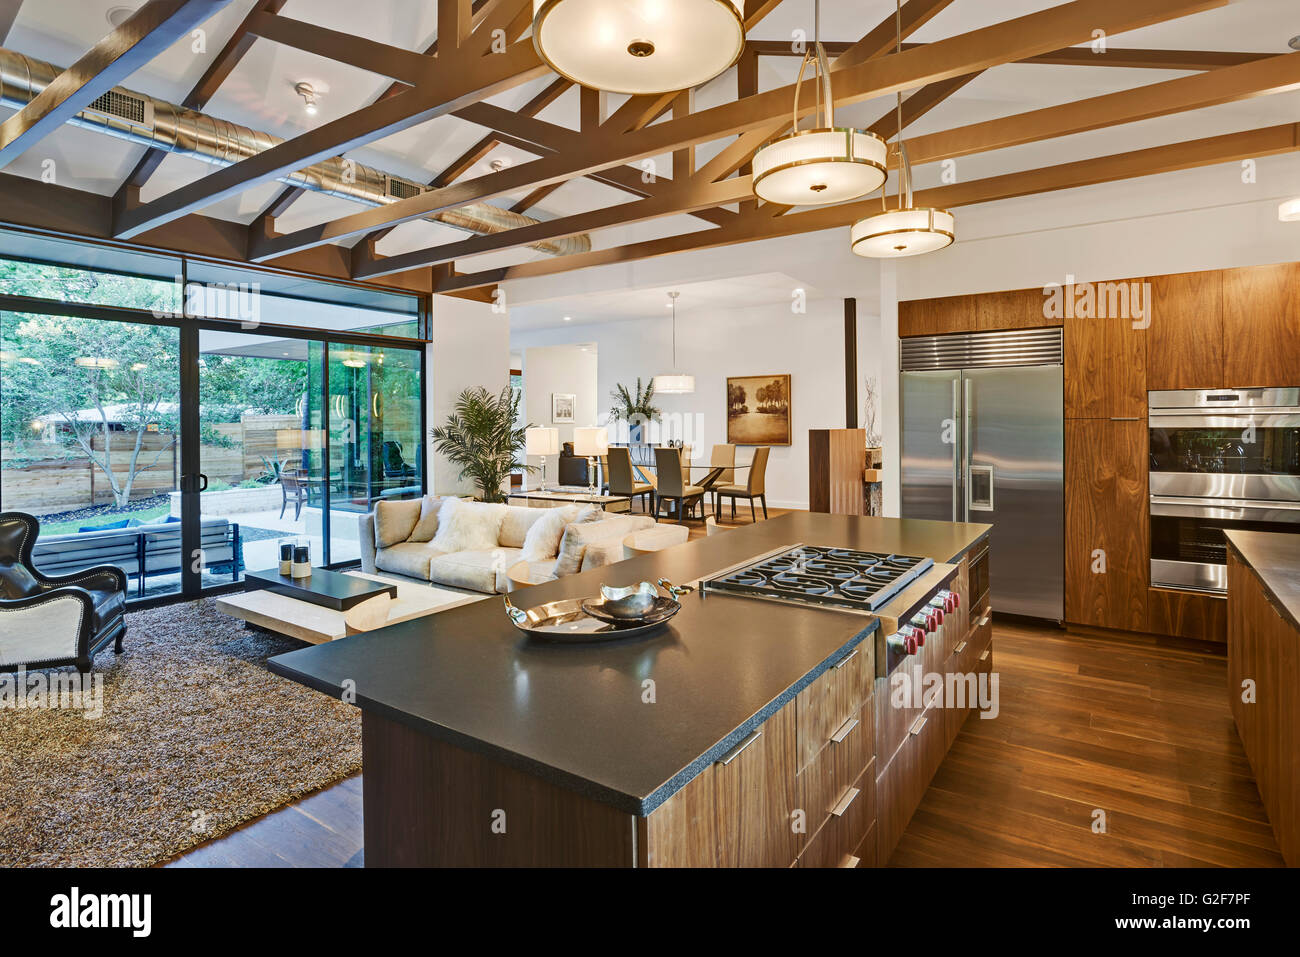 Kitchen Living Room Open Floor Plan open floor plan of house with kitchen, living room and dining room